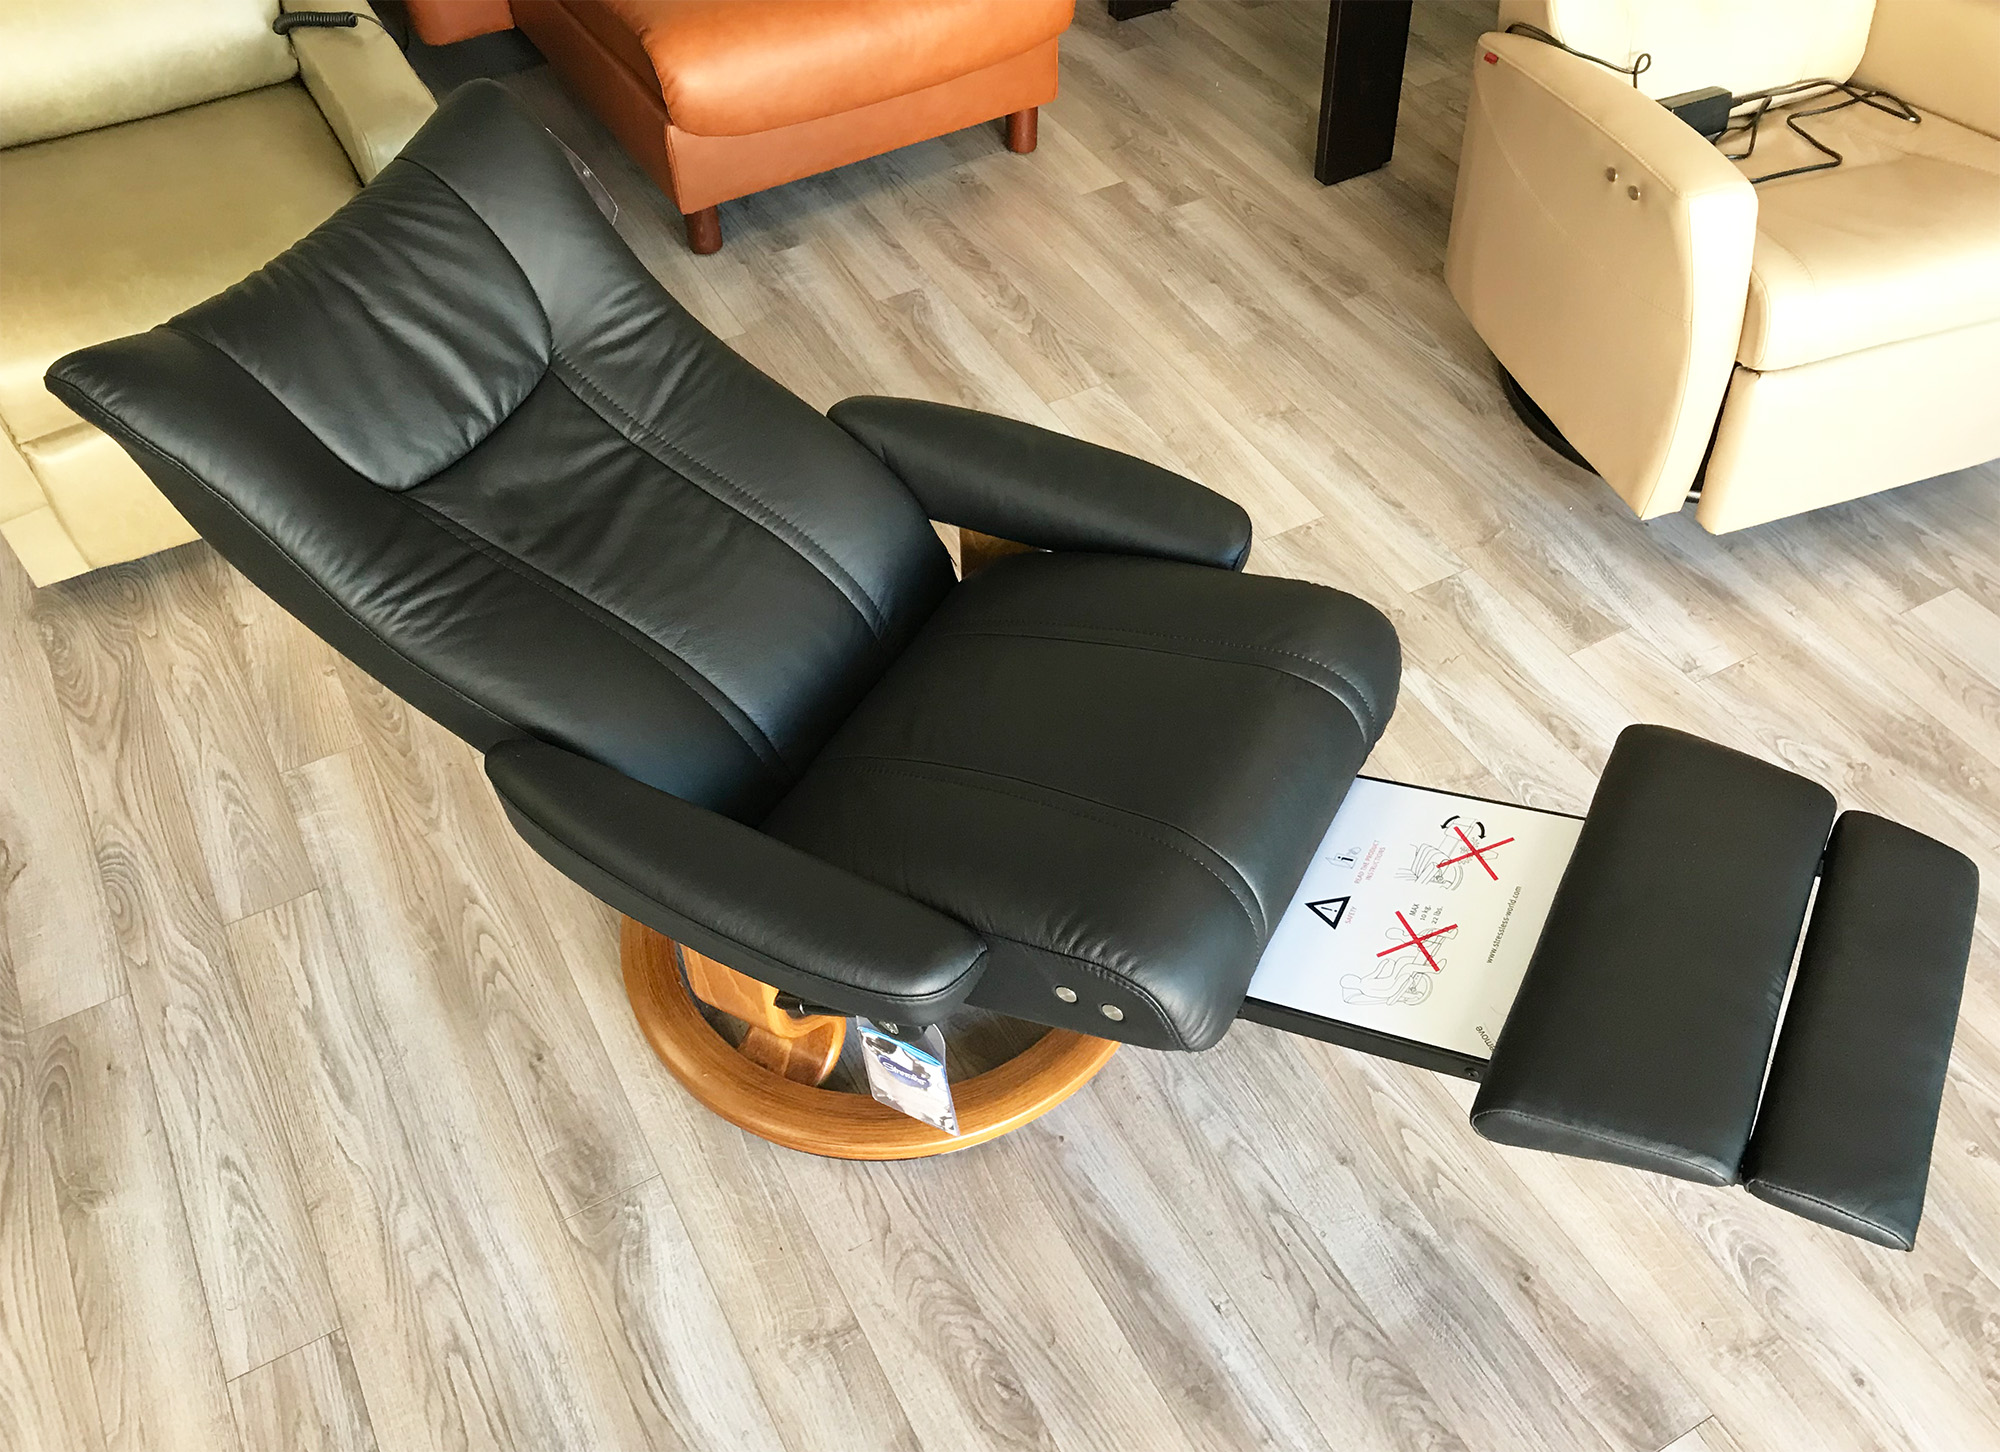 Stressless Nordic Legcomfort Stressless Wing Recliner Chair And Ottoman In Paloma Black Leather By Ekornes